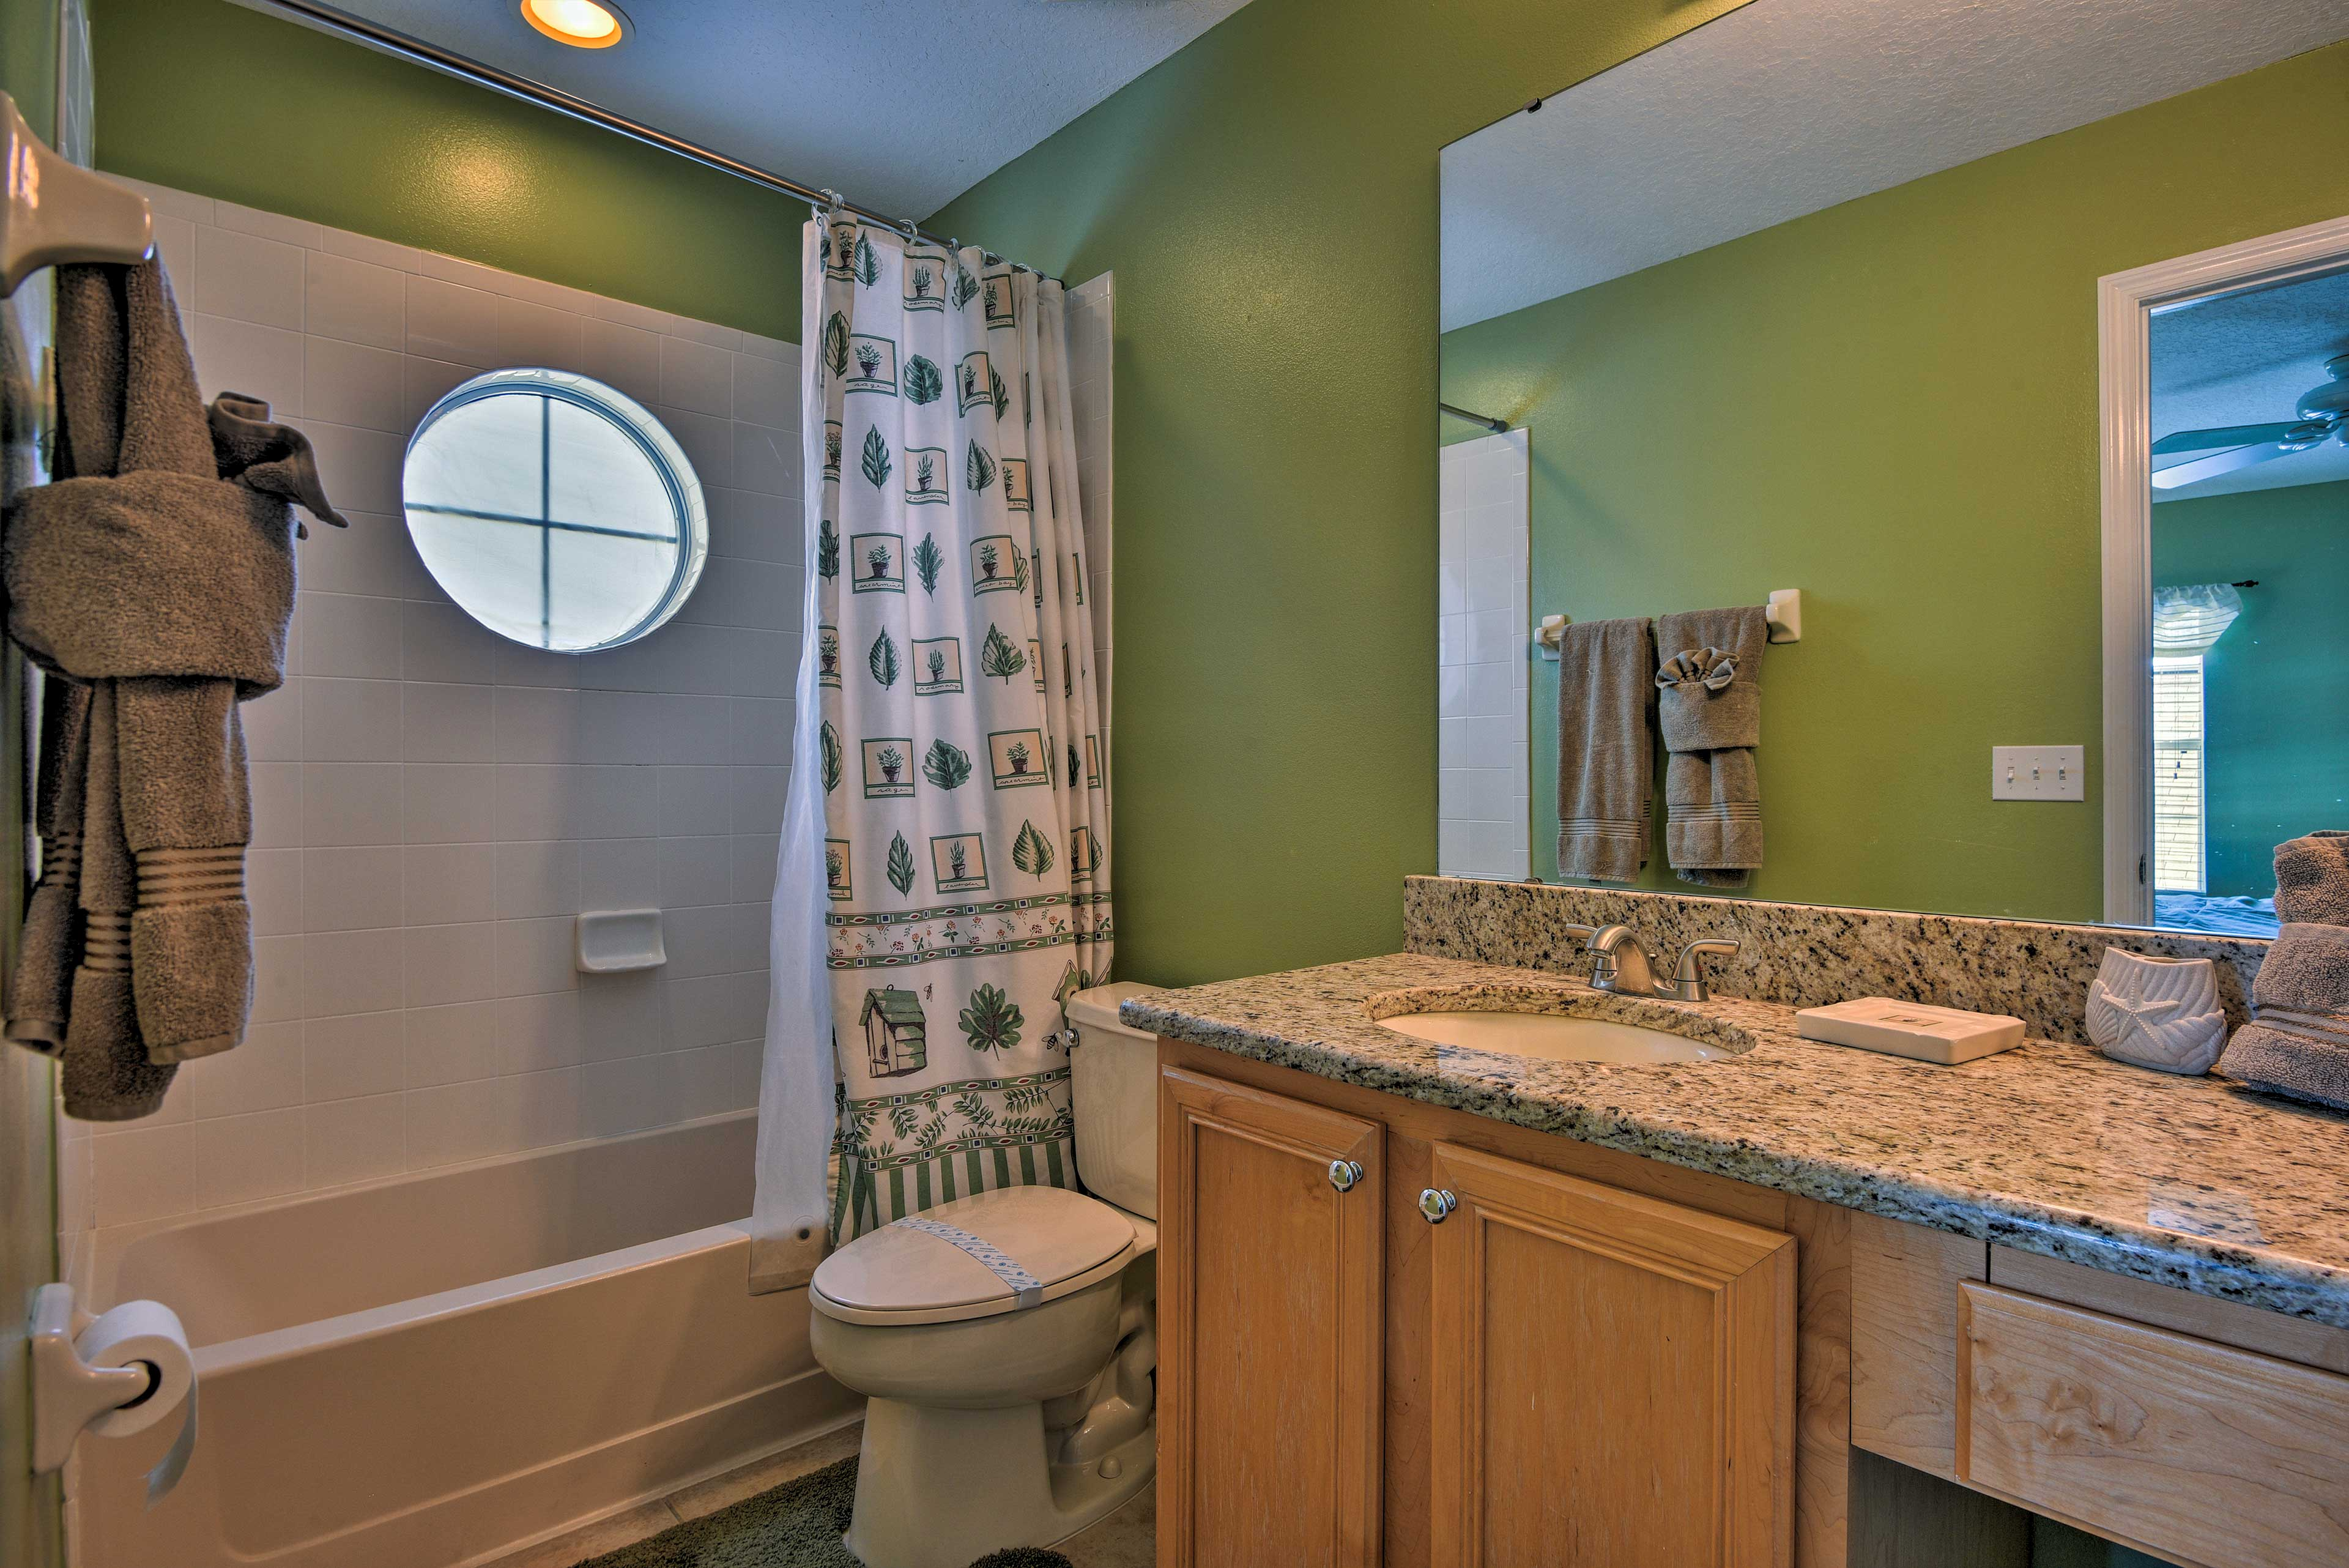 The home offers 6 bathrooms for guests to use.